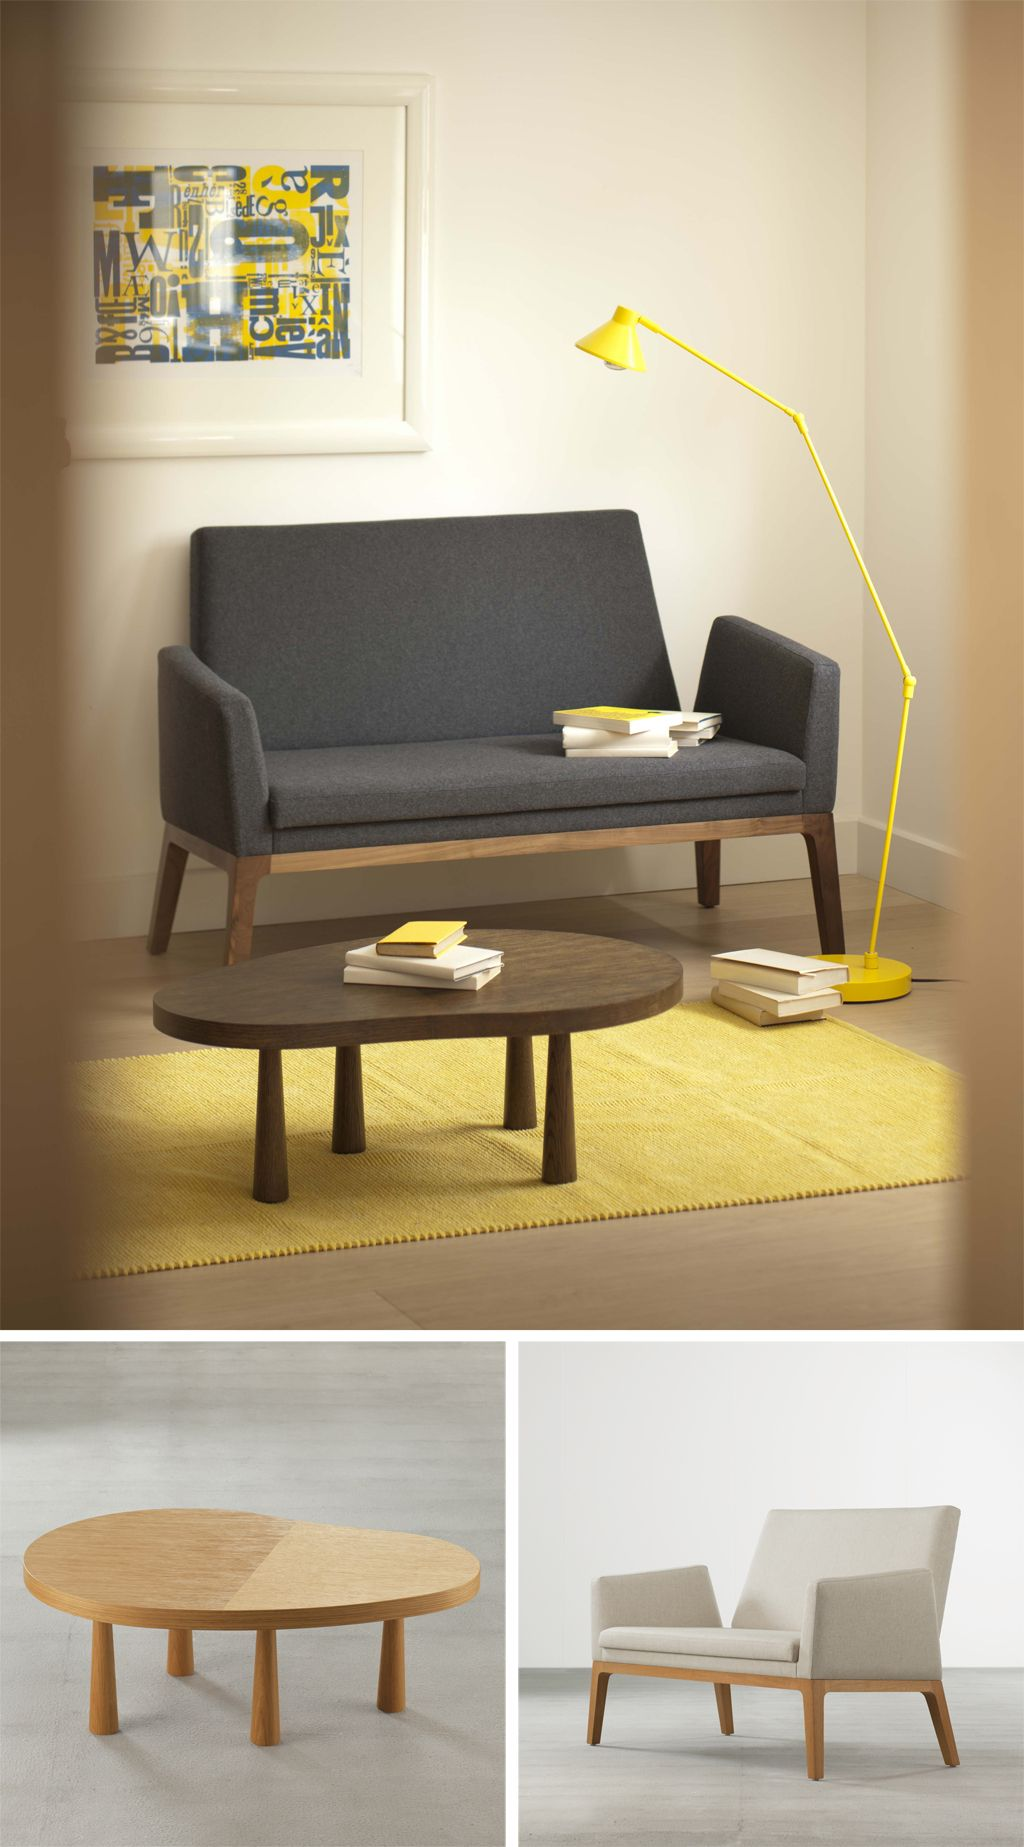 For the living room - Showing items from the 'Verge' and 'Podium'